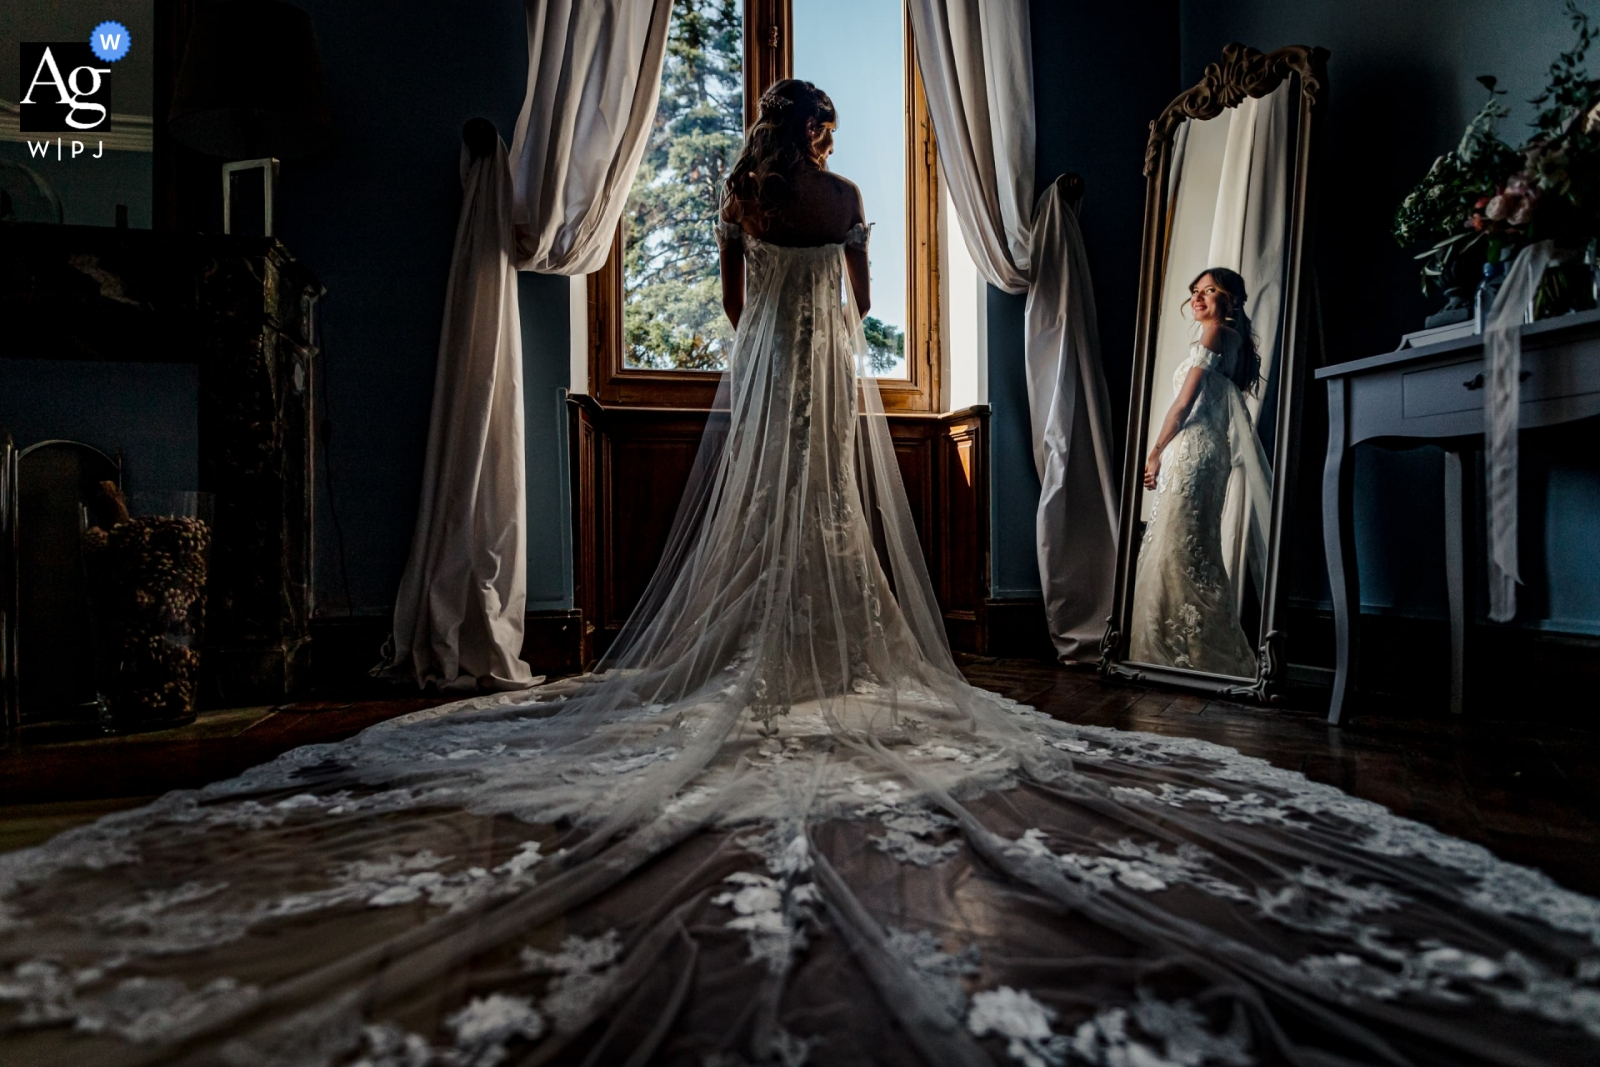 Chateau de la Rode, France - The bride with her stunning wedding dress